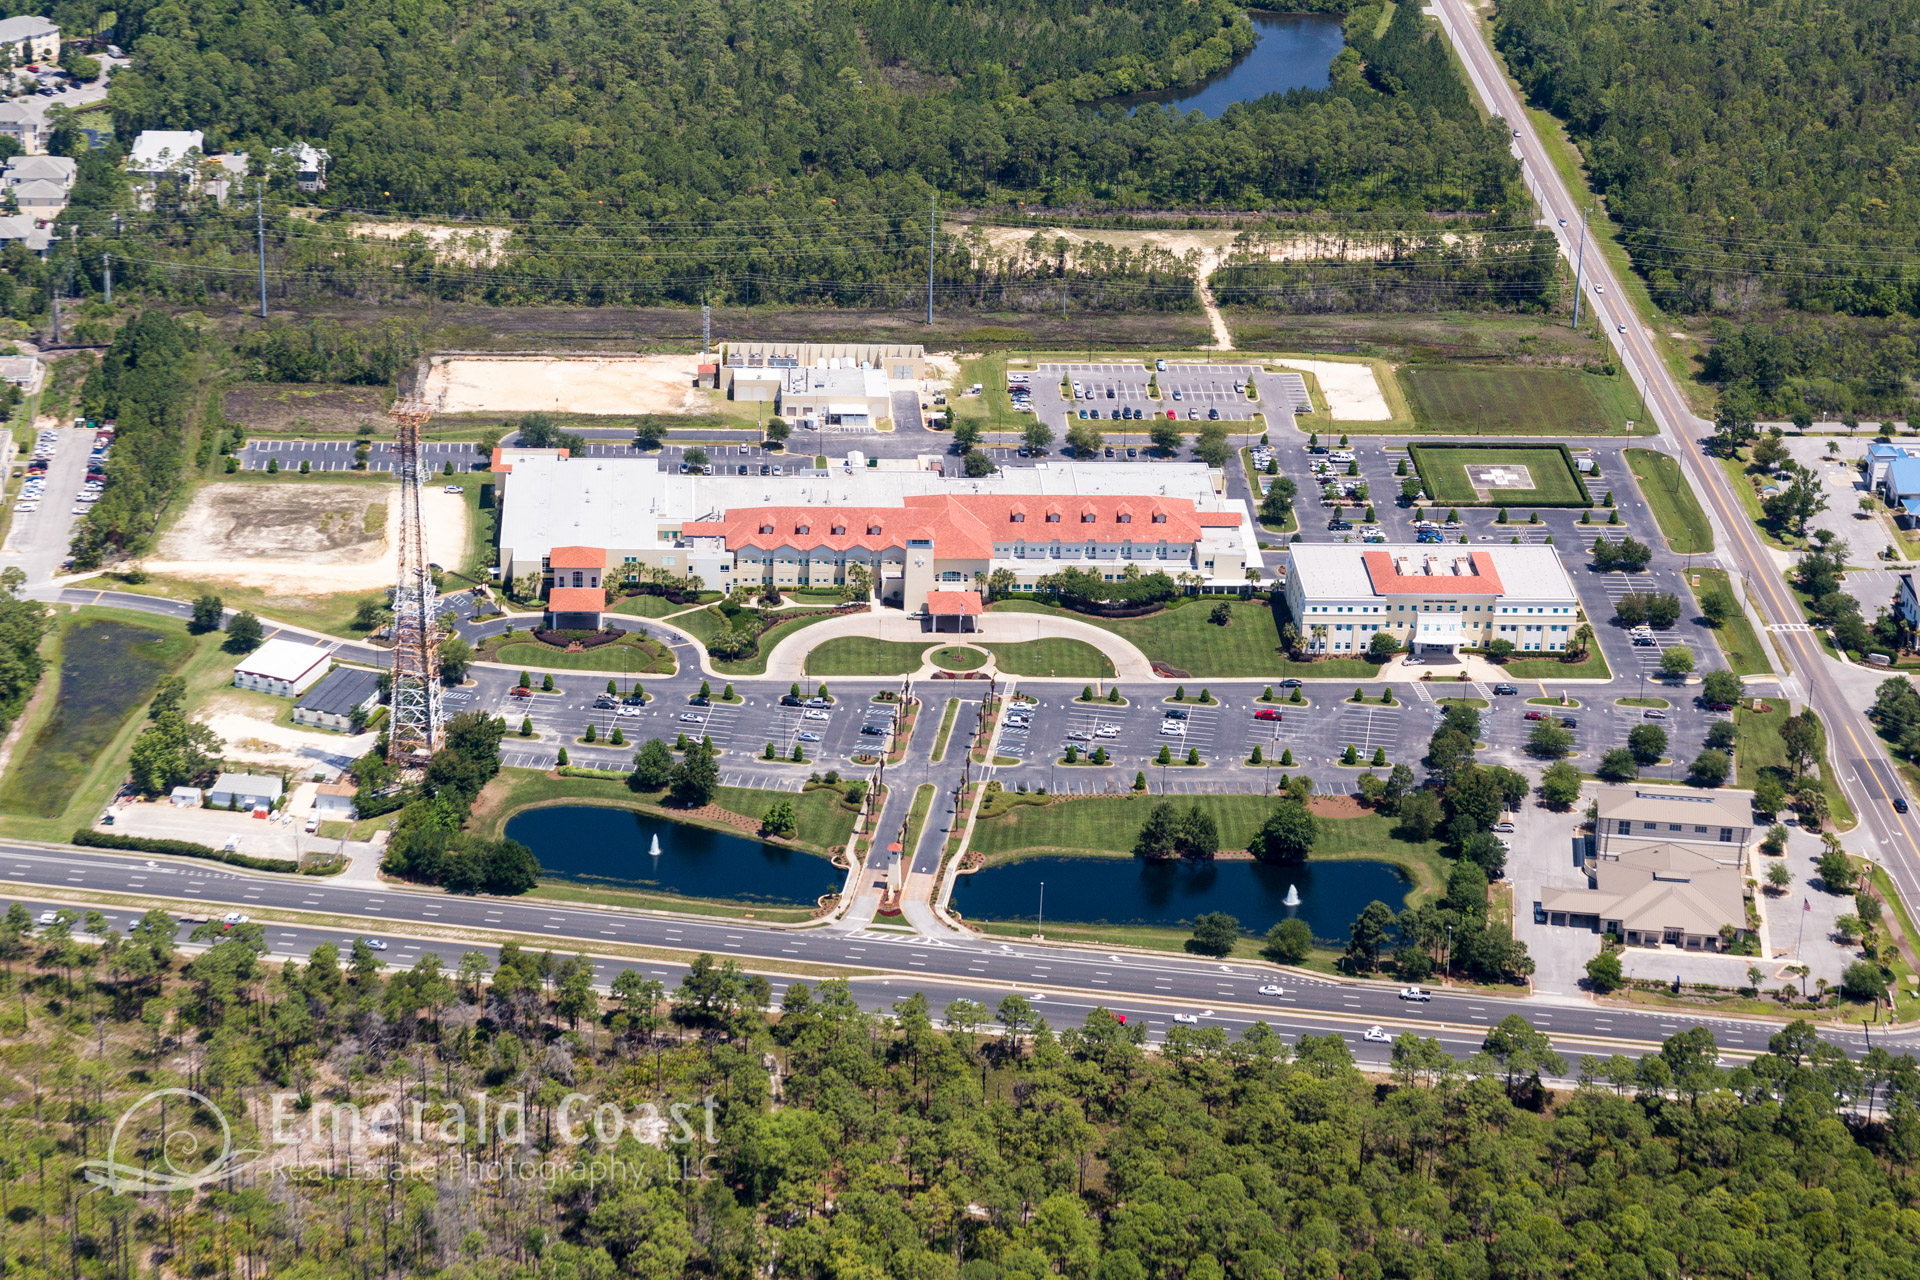 Sacred Heart Hospital, Aerial Photograph, Santa Rosa Beach, Florida